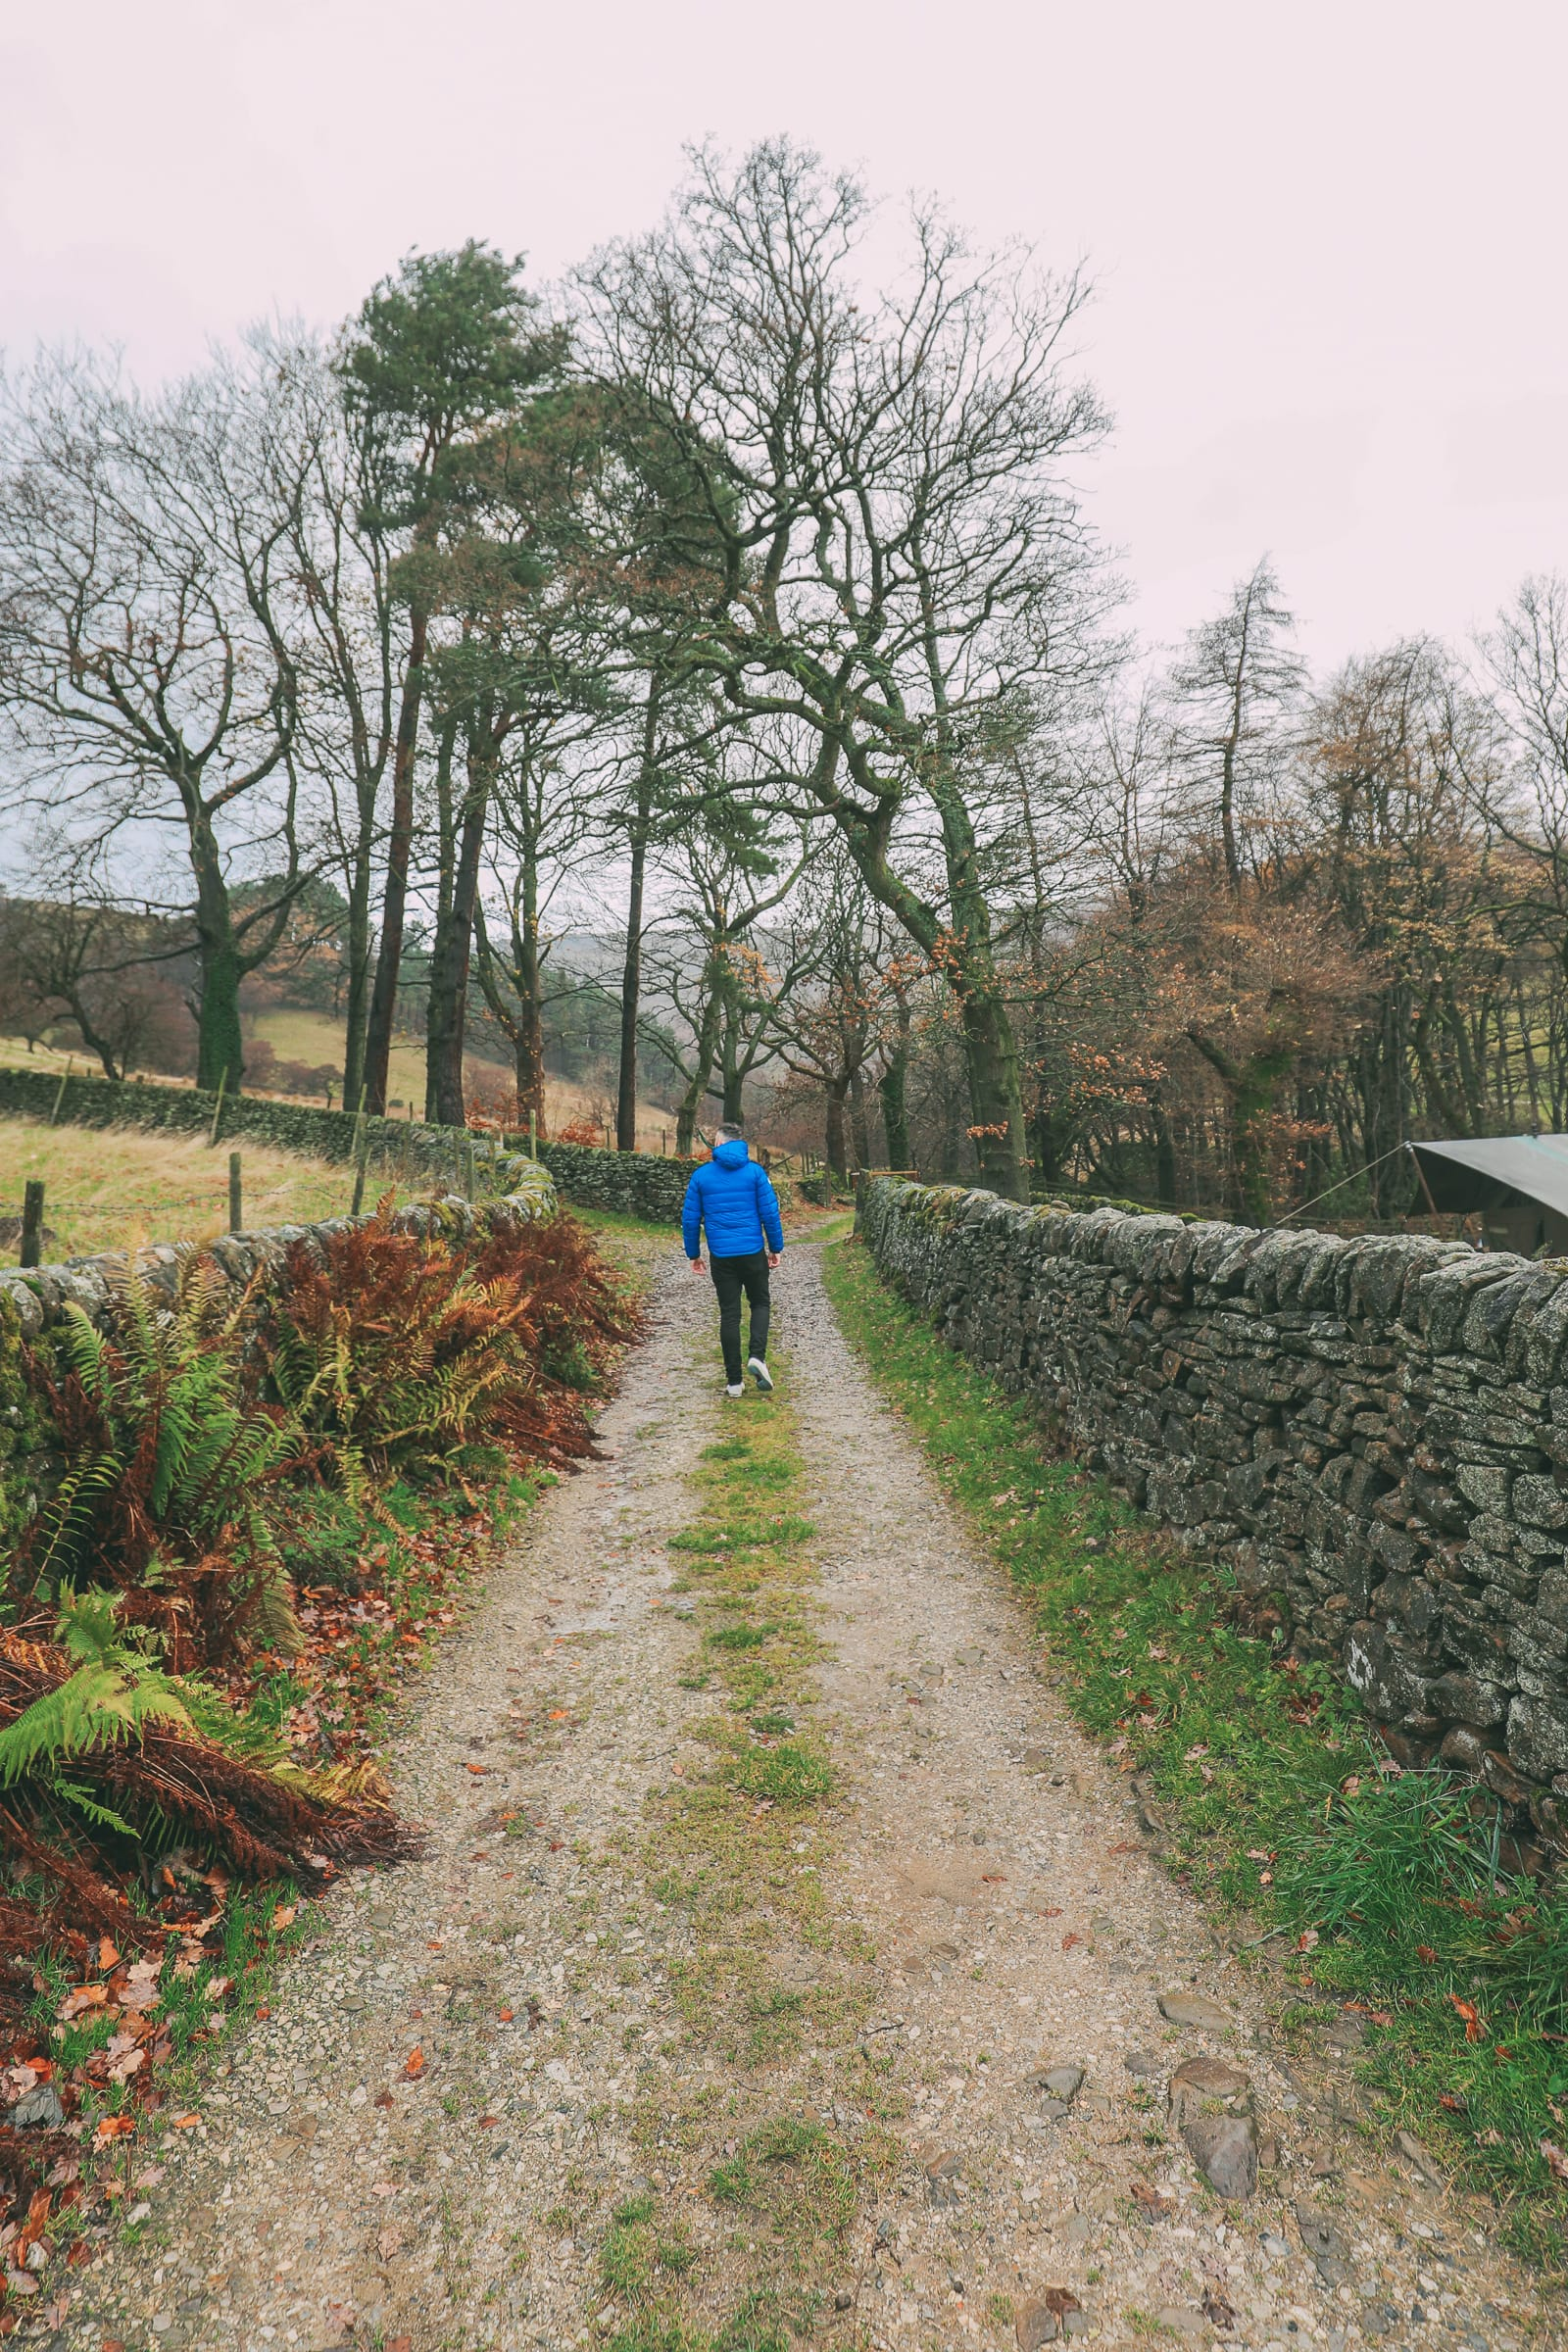 Finding Robin Hood's Bow And Safari Lodging In The Peak District, England (33)